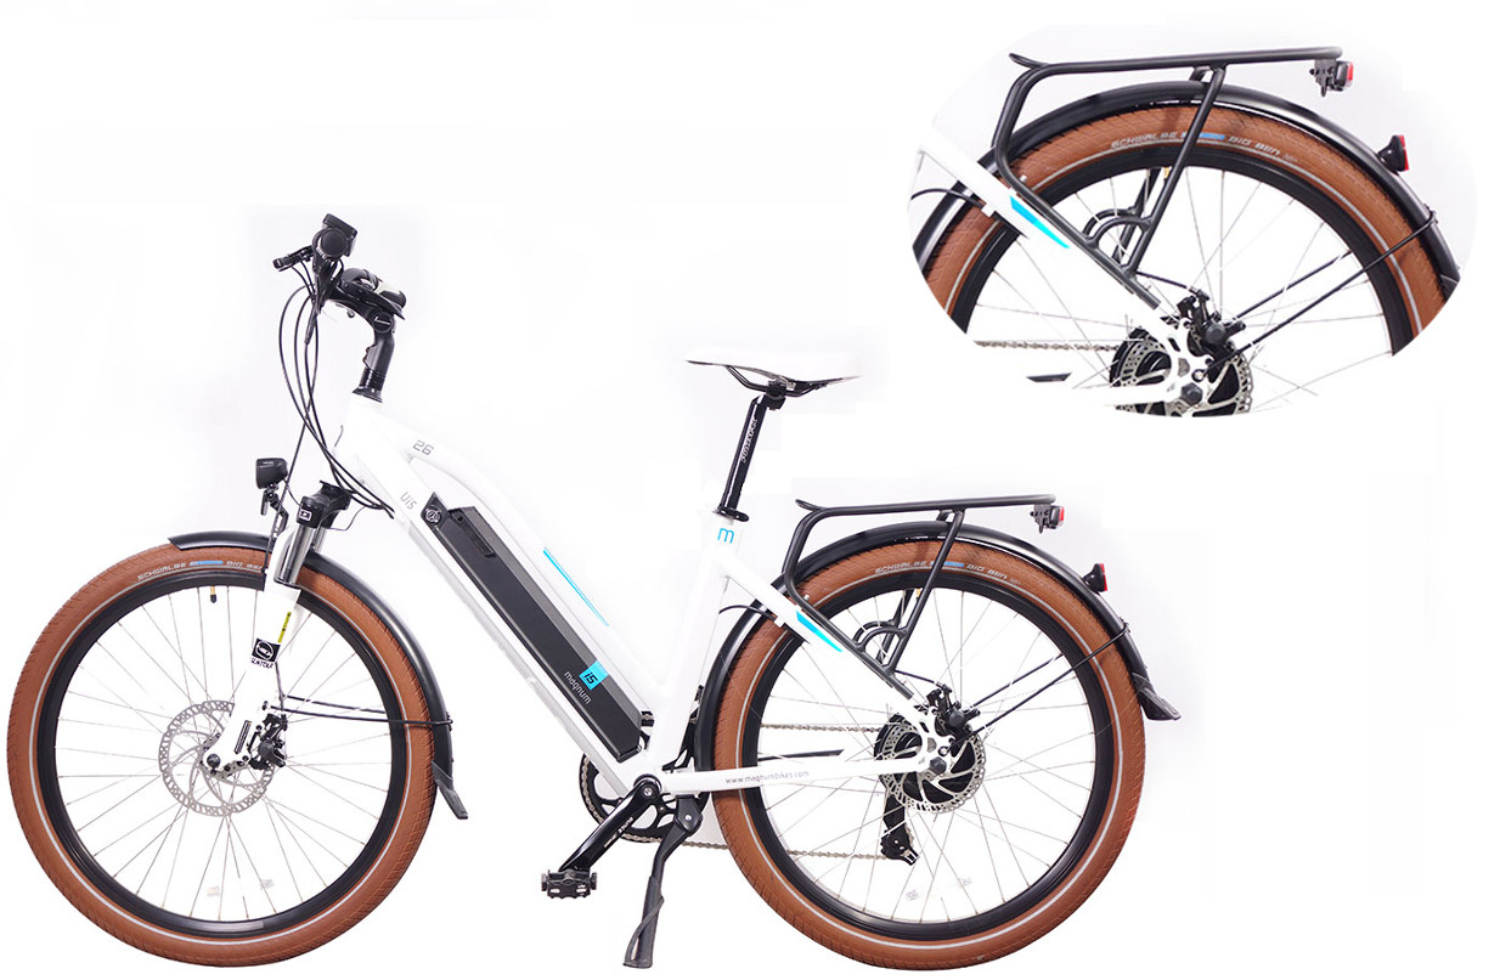 Rear Rack for the Magnum Peak, Magnum Ui5 and Magnum Mi5 E-Bikes